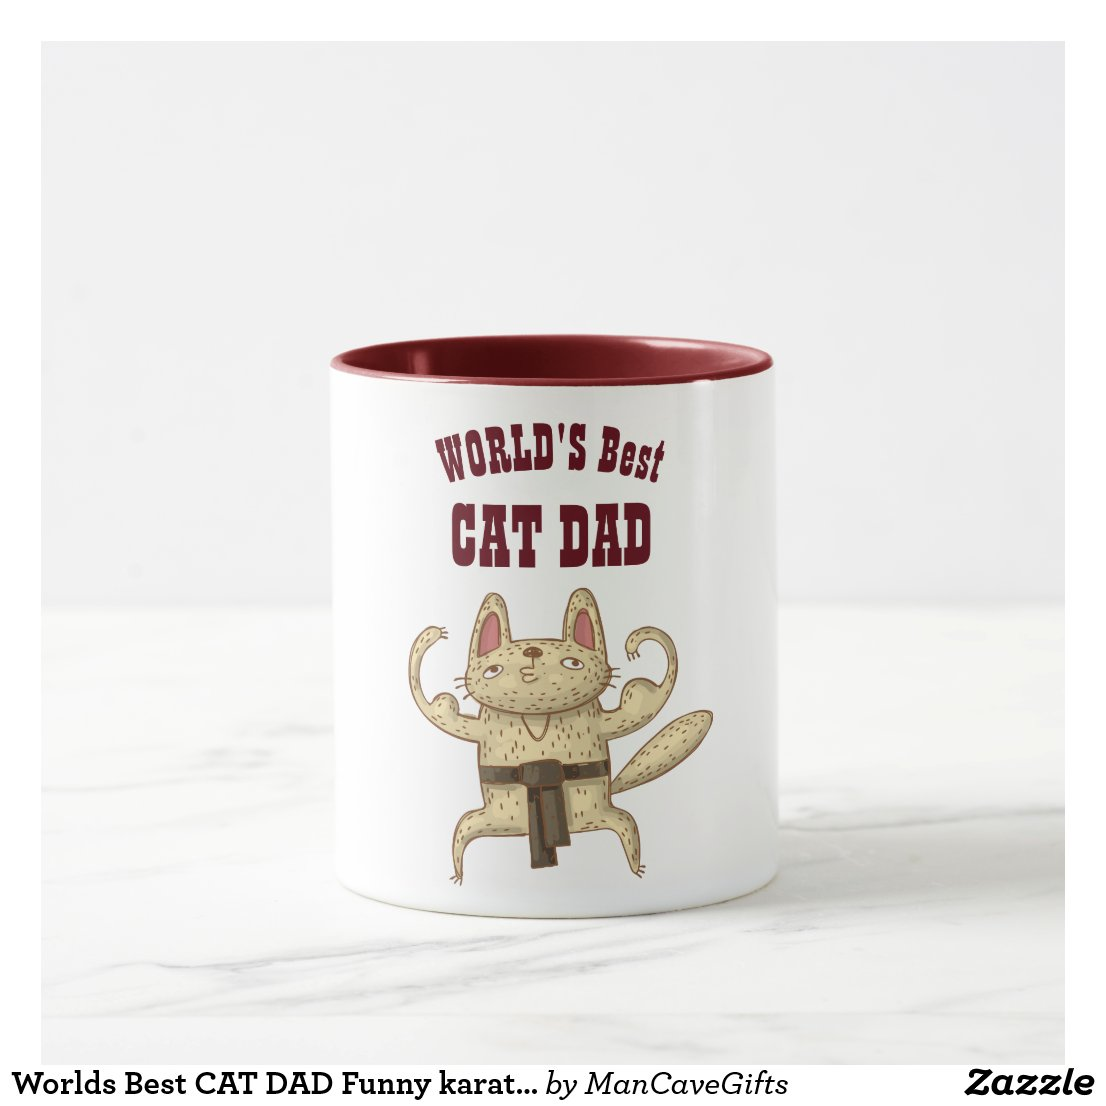 Worlds Best CAT DAD Funny karate Judo Cartoon Cat Mug